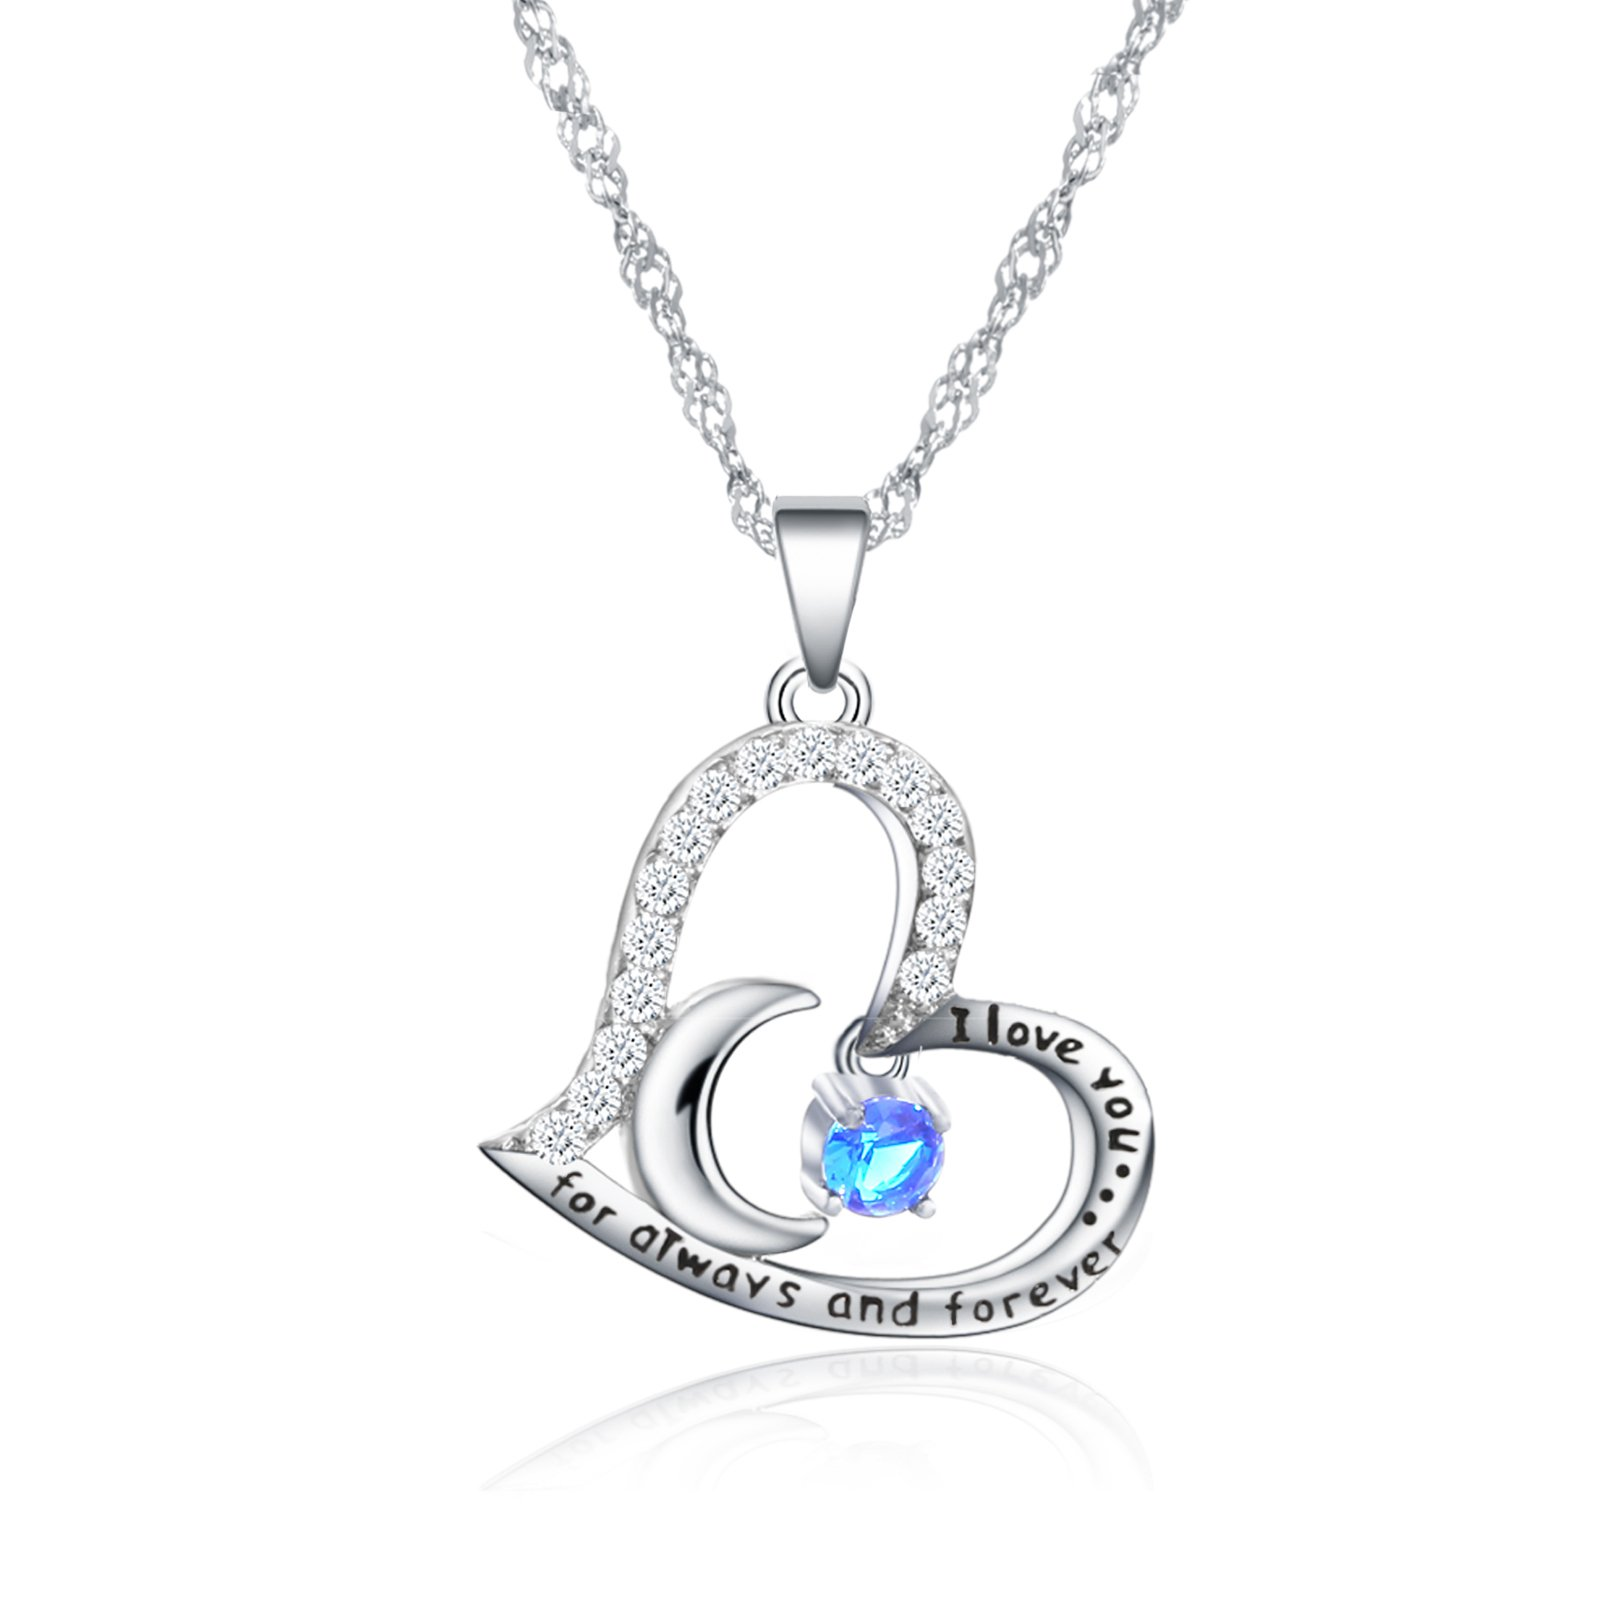 Valentine's Day Gift Fine Jewelry Gift Sterling Silver Heart Pendant Necklace Birthday Necklace I Love You For Always and Forever Dancing Birthstone (09-September-Sapphire) by Anna Crystal Jewelry (Image #1)